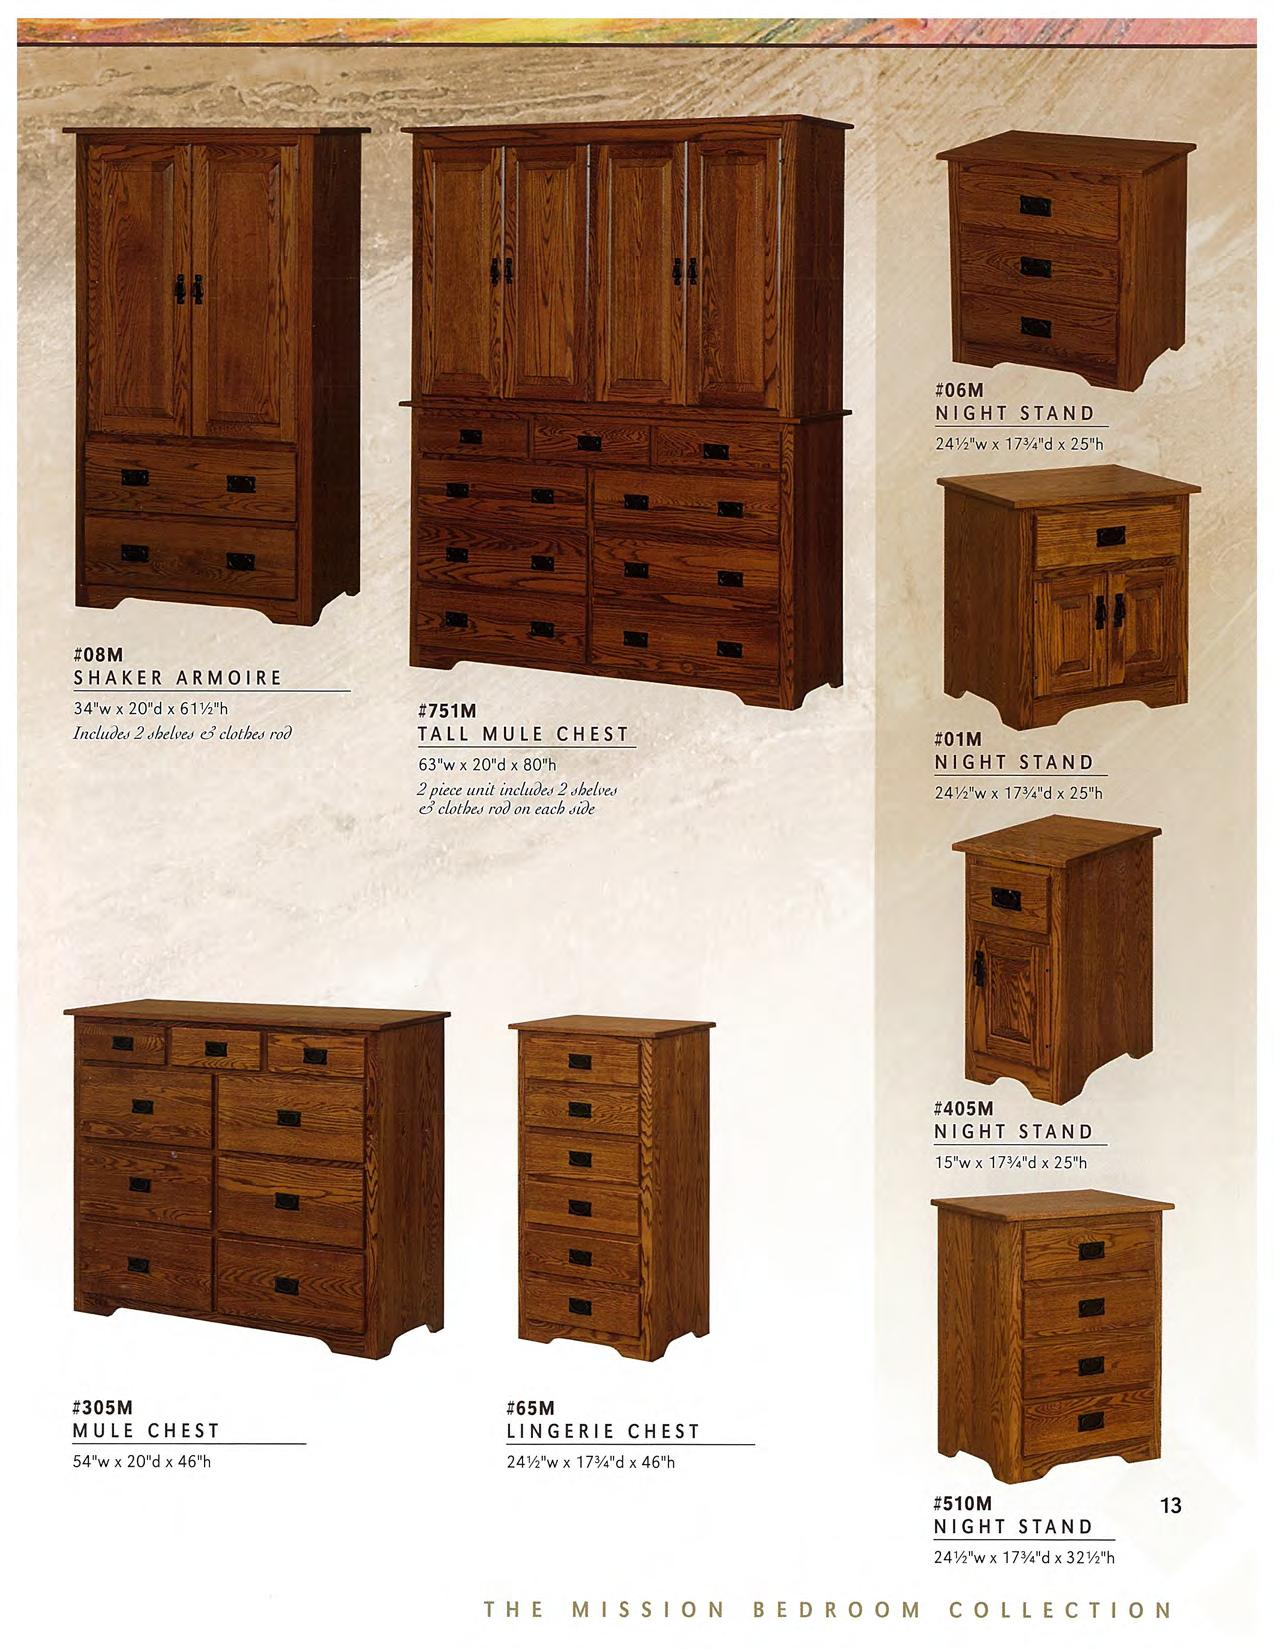 furniture-page-013